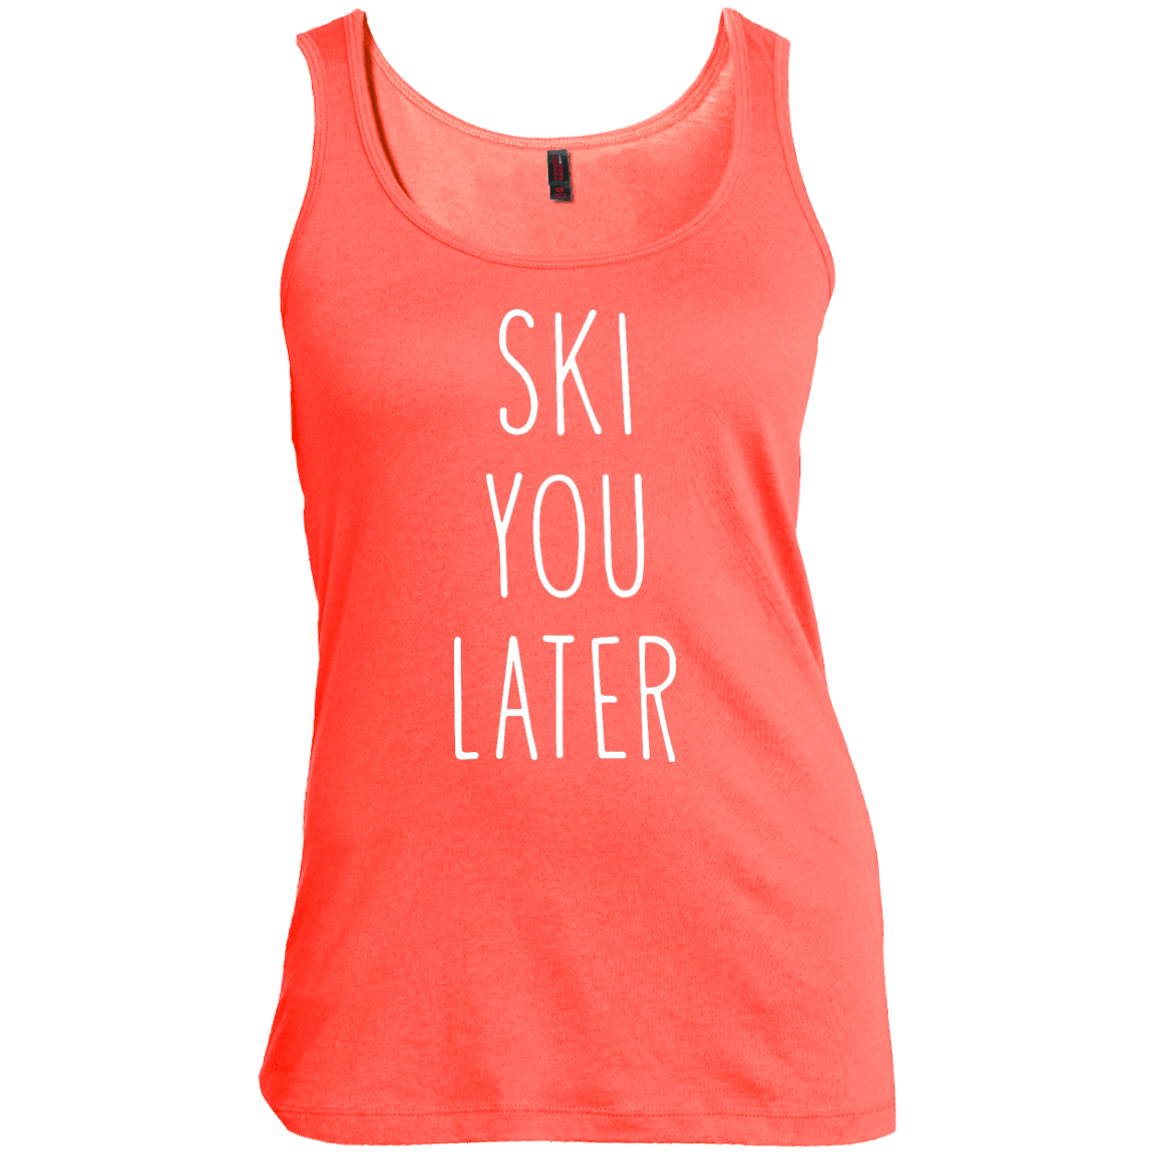 Ski You Later Tank Tops - Powderaddicts